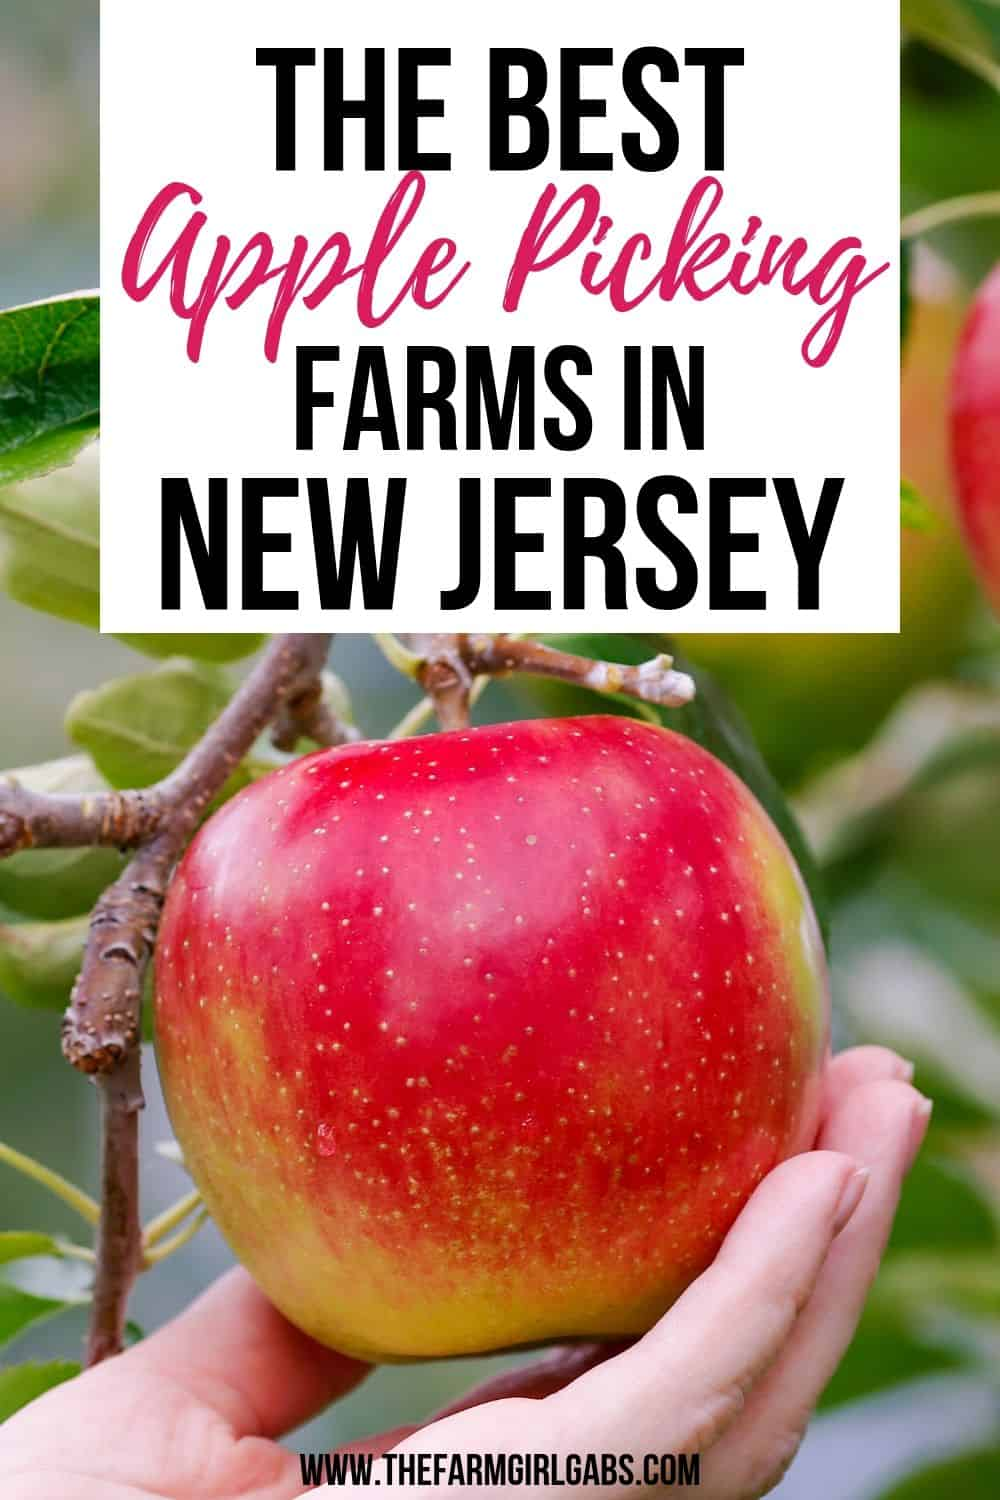 Ready for some fall fun? It's apple season. Take the family to one of the Best Farms To Pick Your Own Apples In NJ. #applepicking #njappleorchards #pickyourownapplesnj